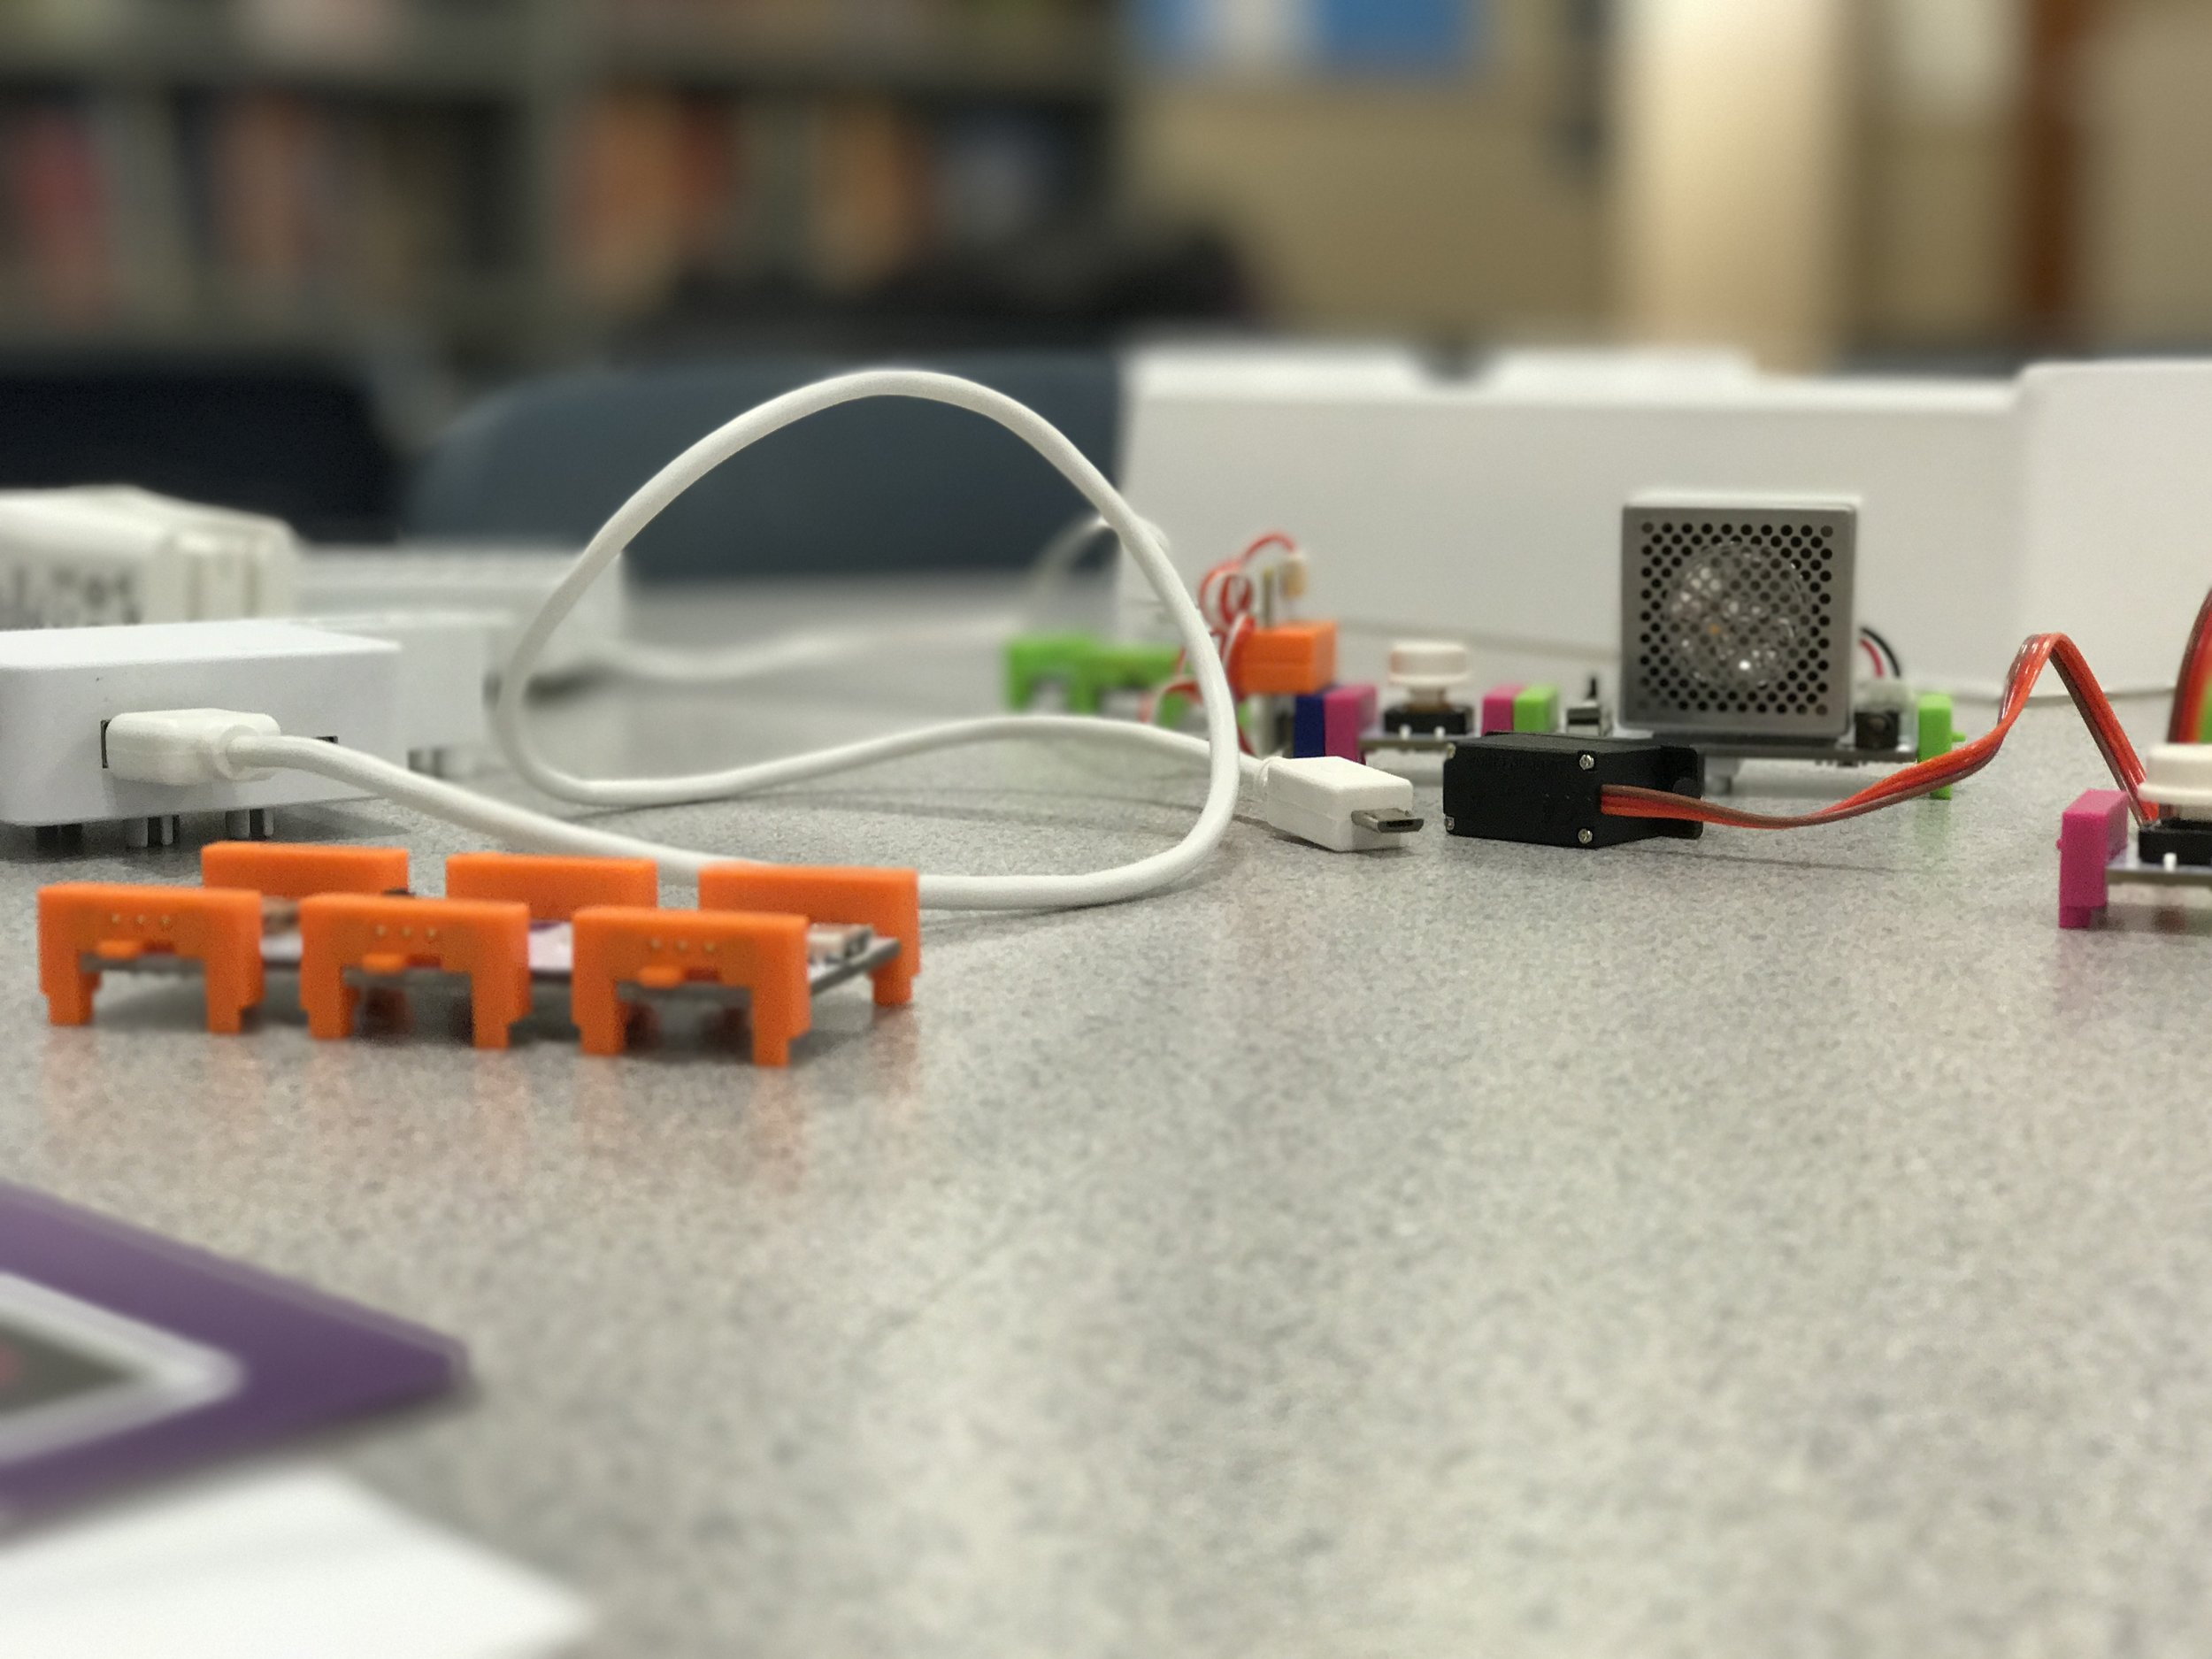 littleBits Coding Kit - Coming up on our next episode.